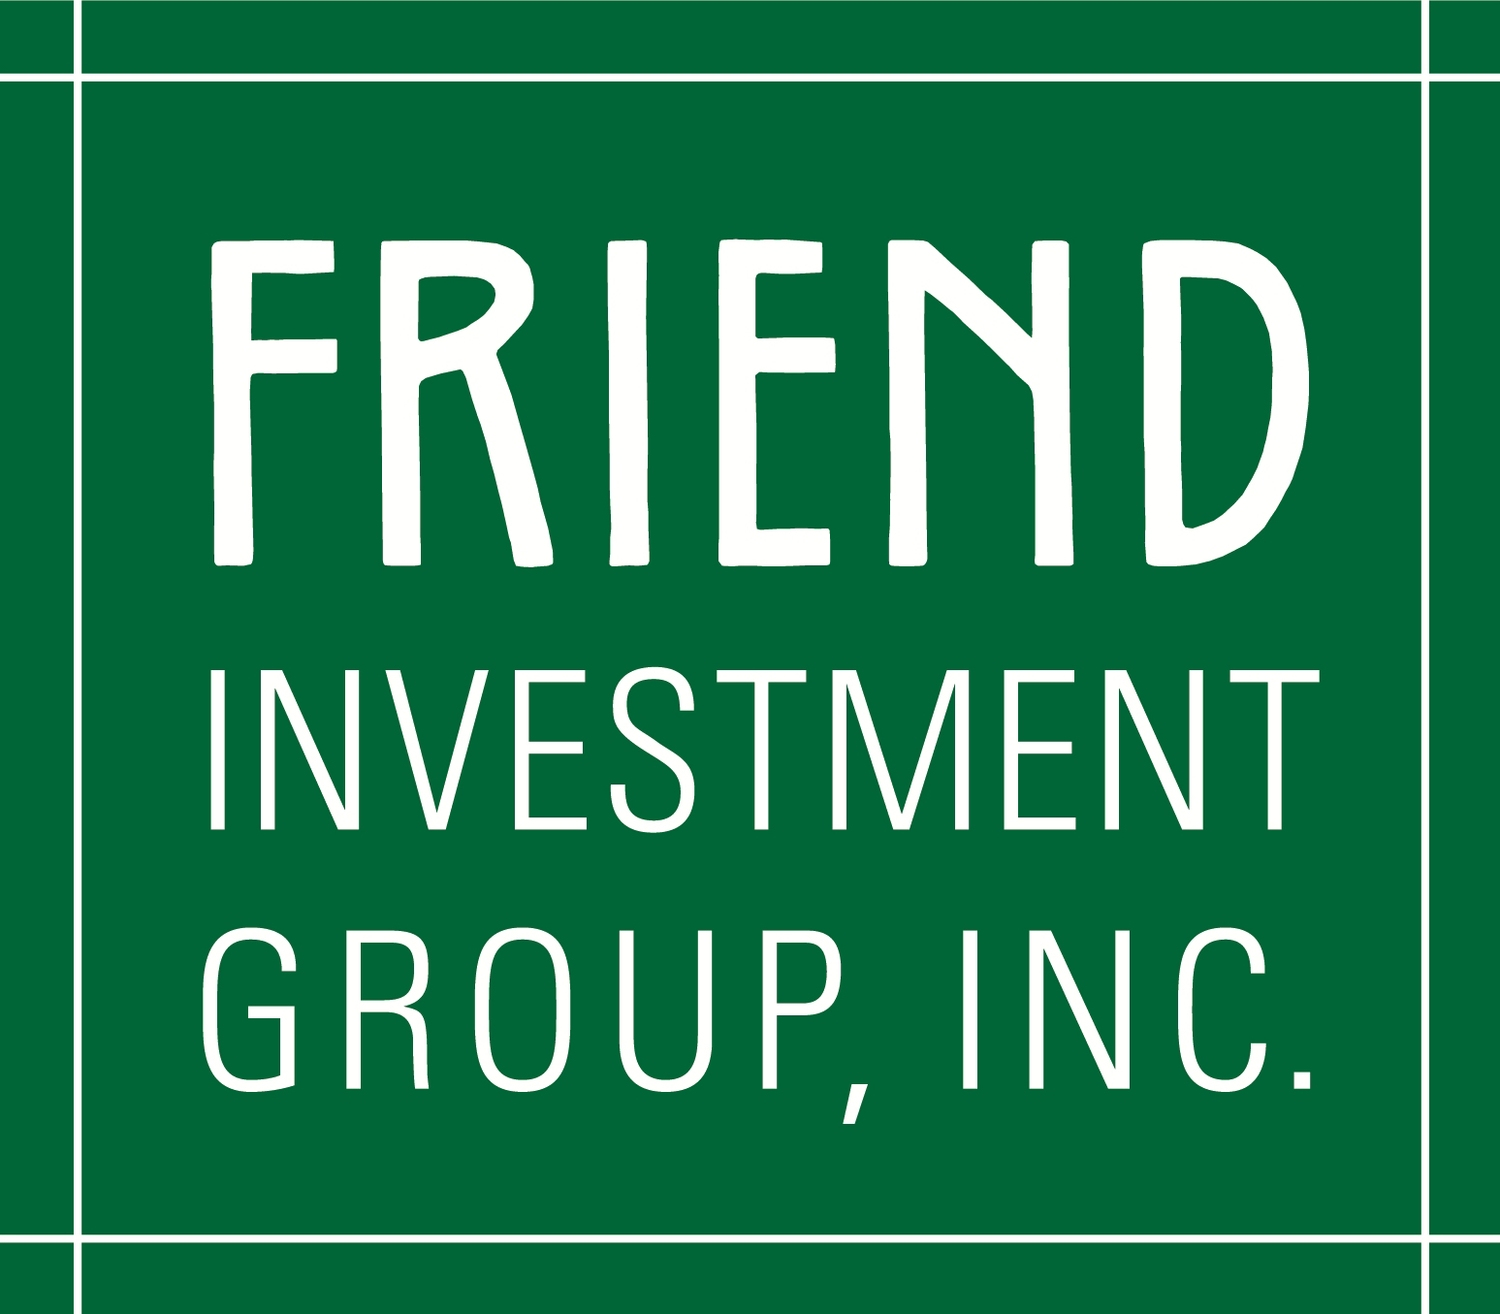 Friend Investment Group, Inc.